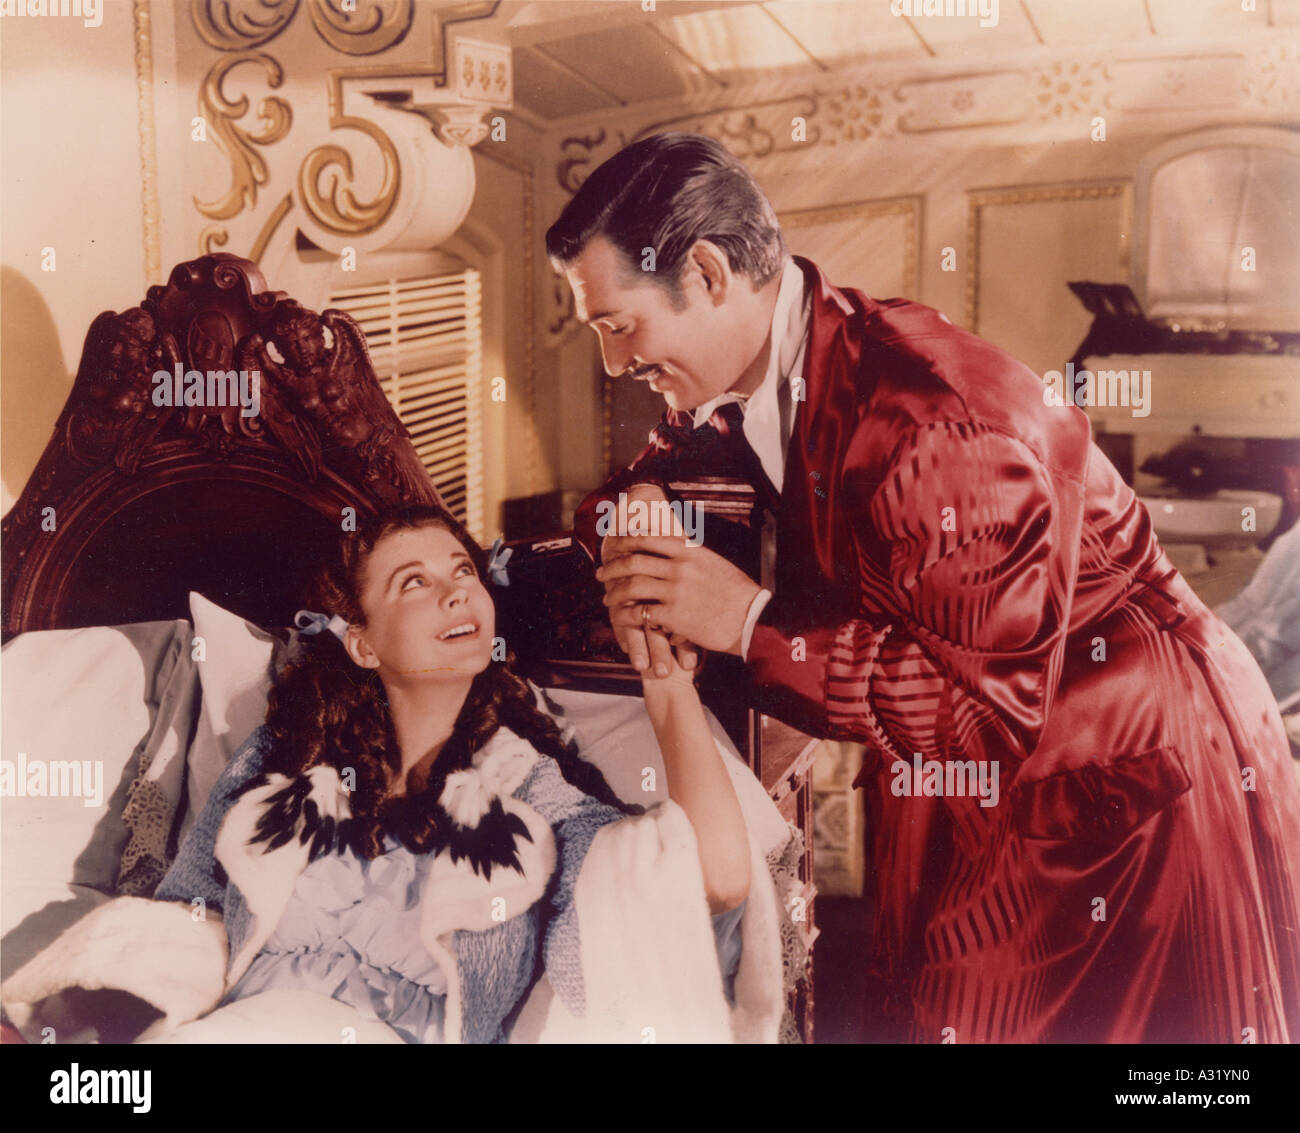 GONE WITH THE WIND Vivien Leigh and Clark Gable in the 1939 MGM film classic - Stock Image